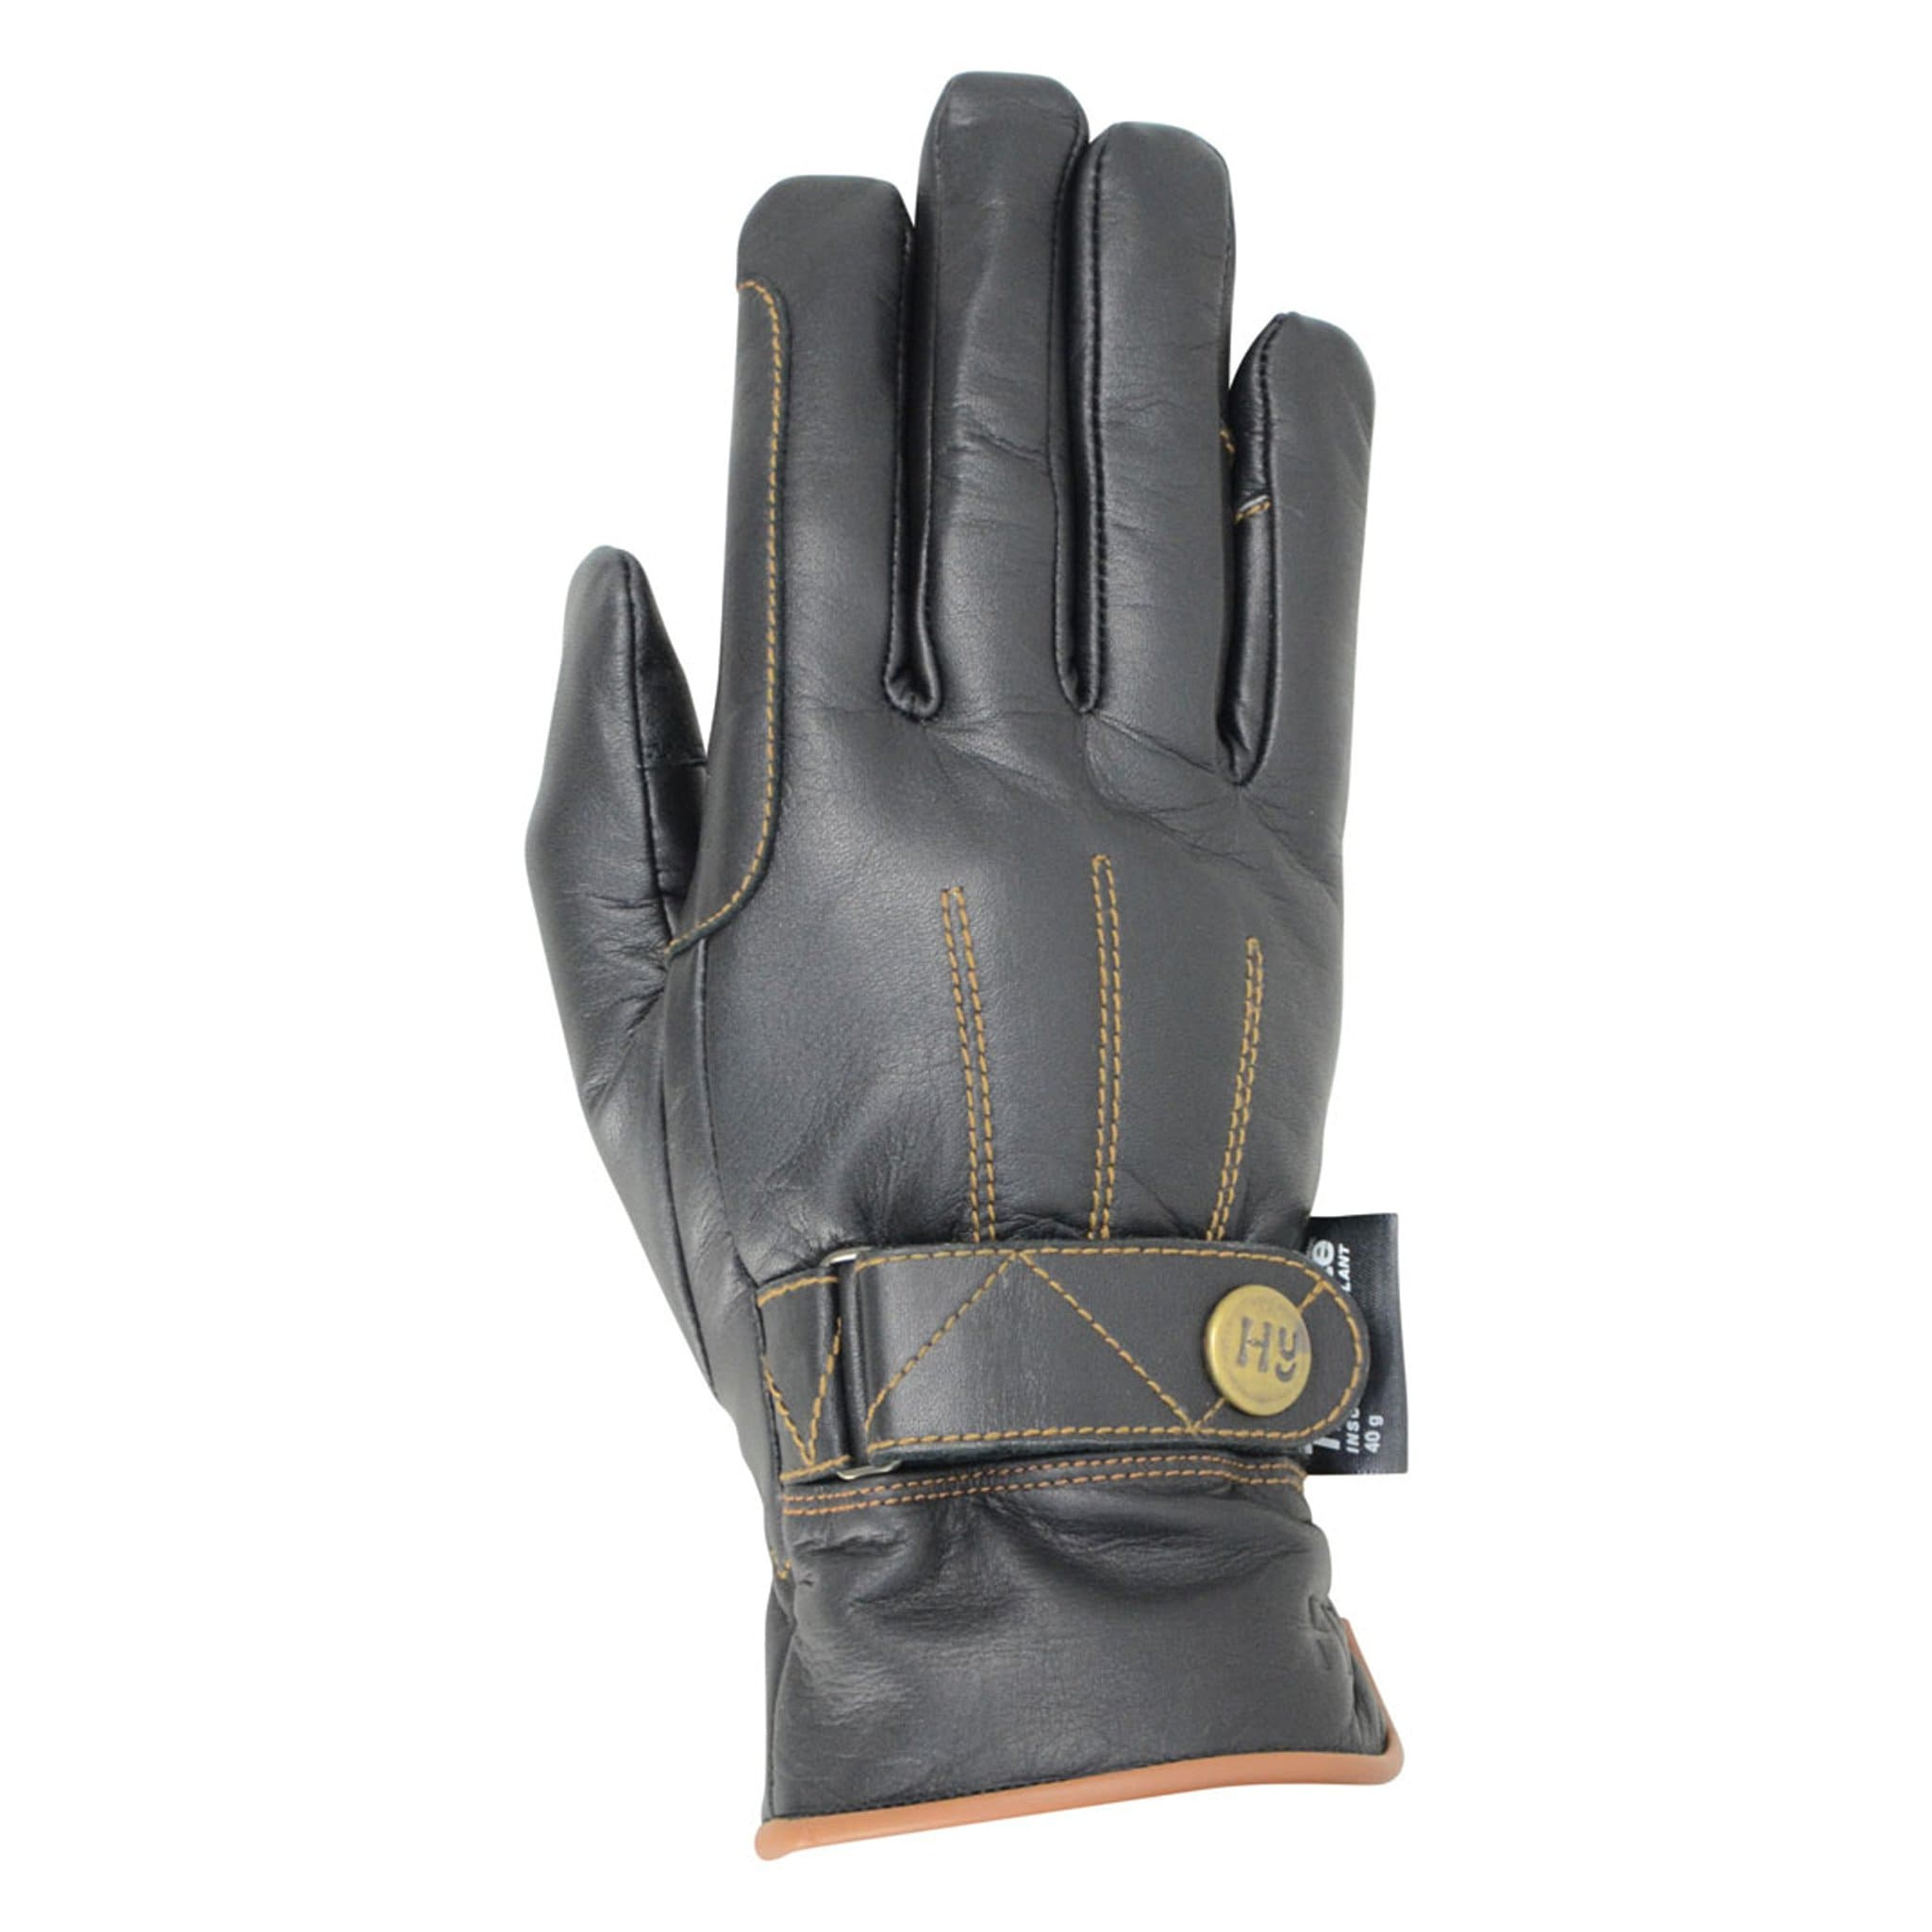 Hy5 Thinsulate Leather Winter Riding Gloves Black Back